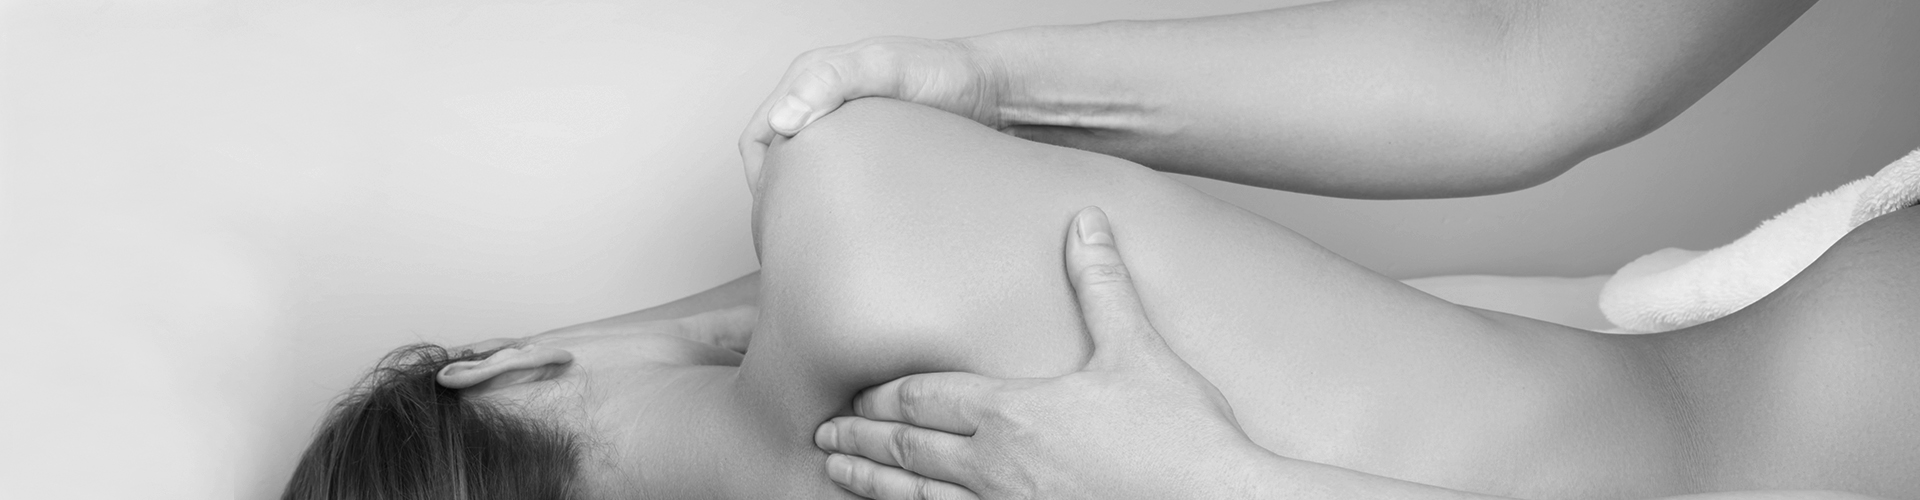 Treatment Soft Tissue Massage